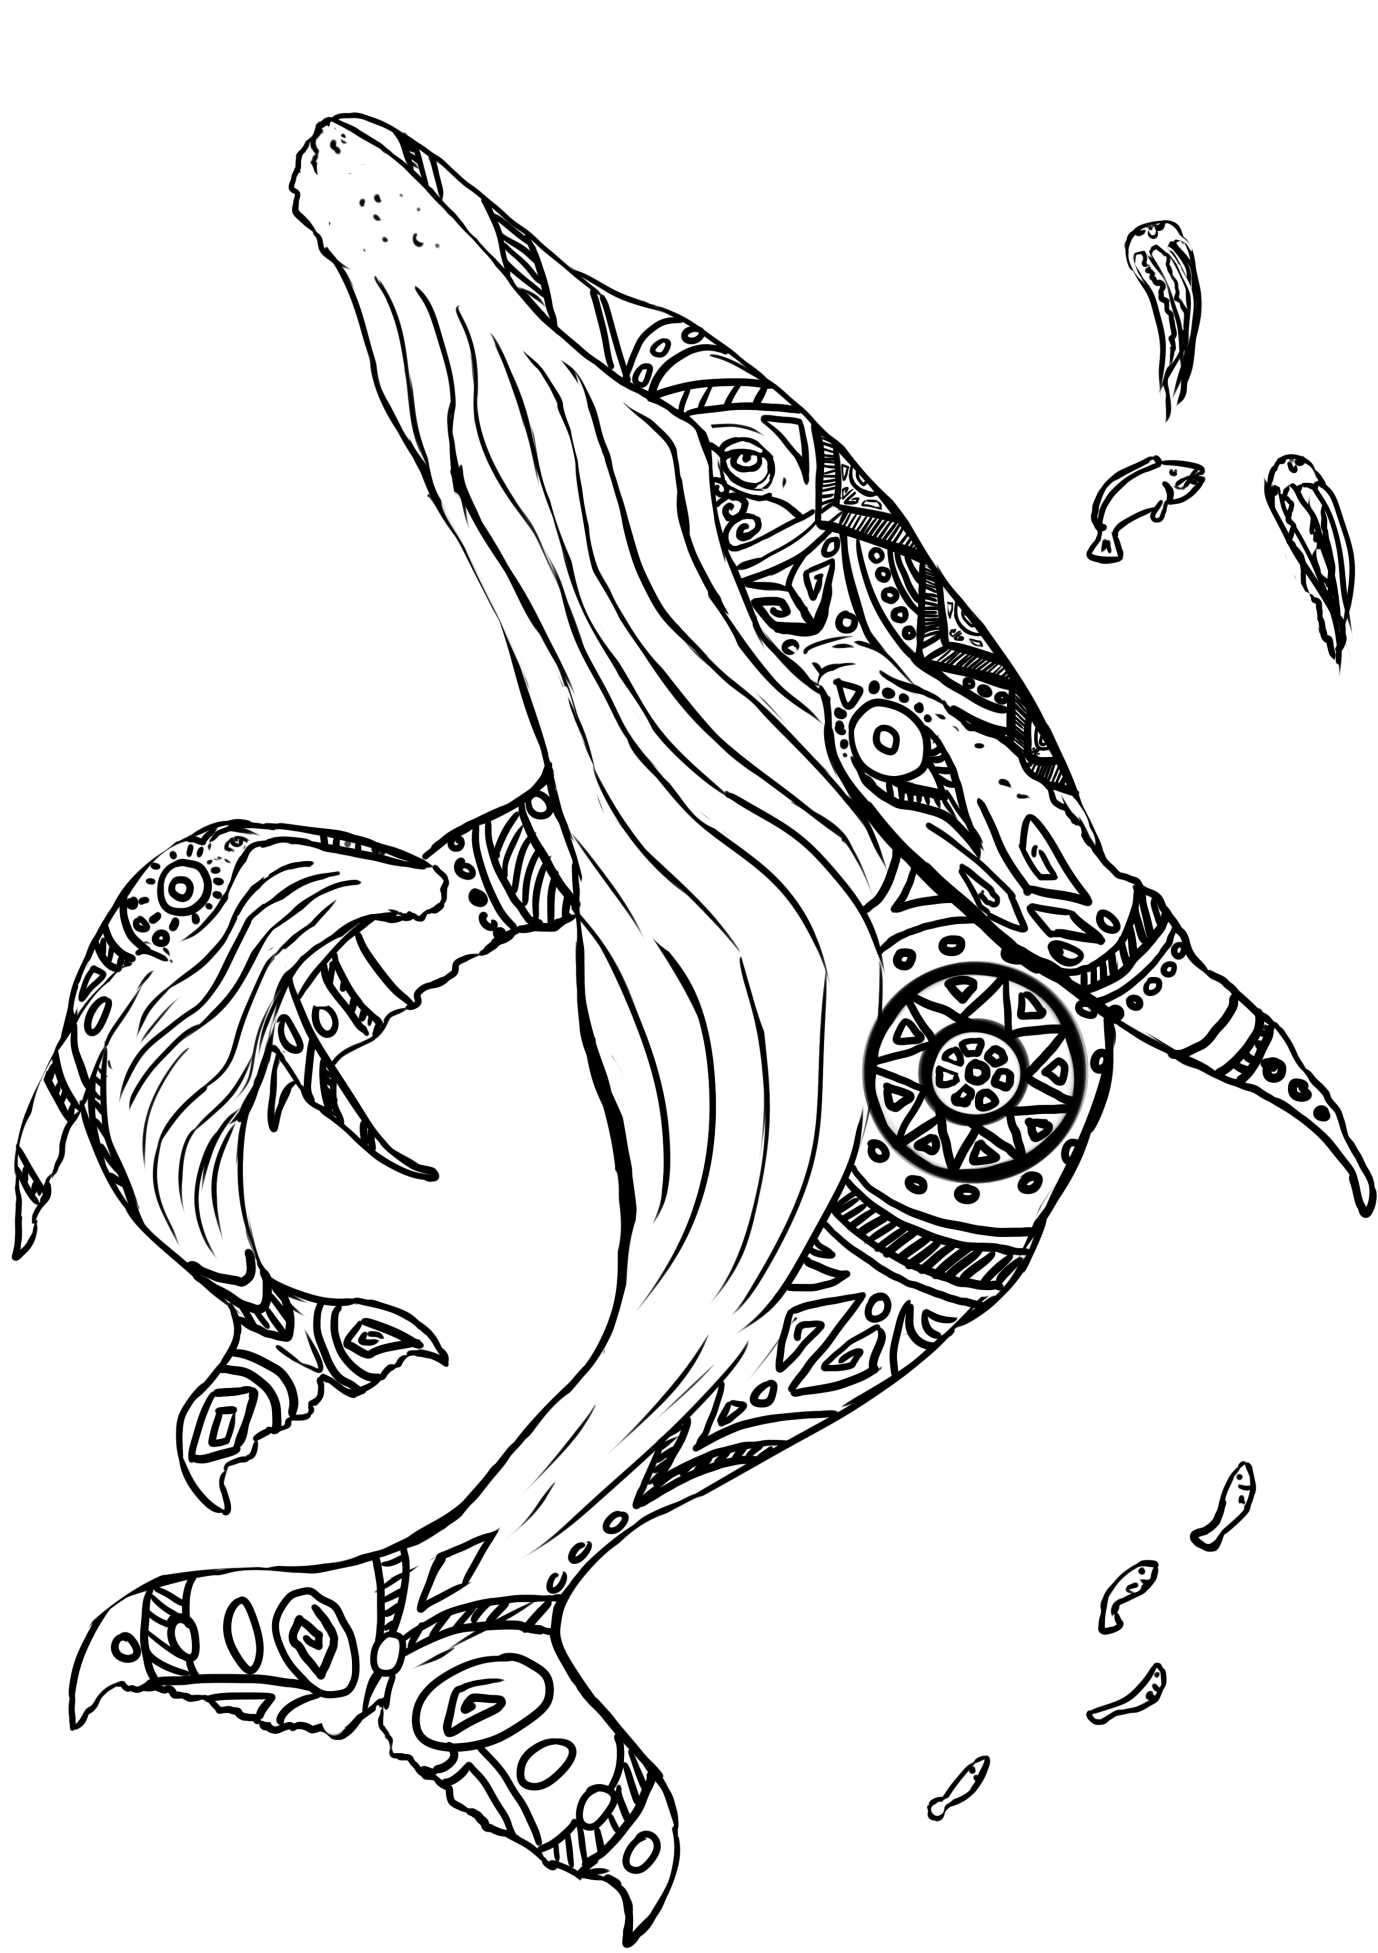 cartoon whale coloring page whale coloring page with images whale coloring pages page cartoon whale coloring